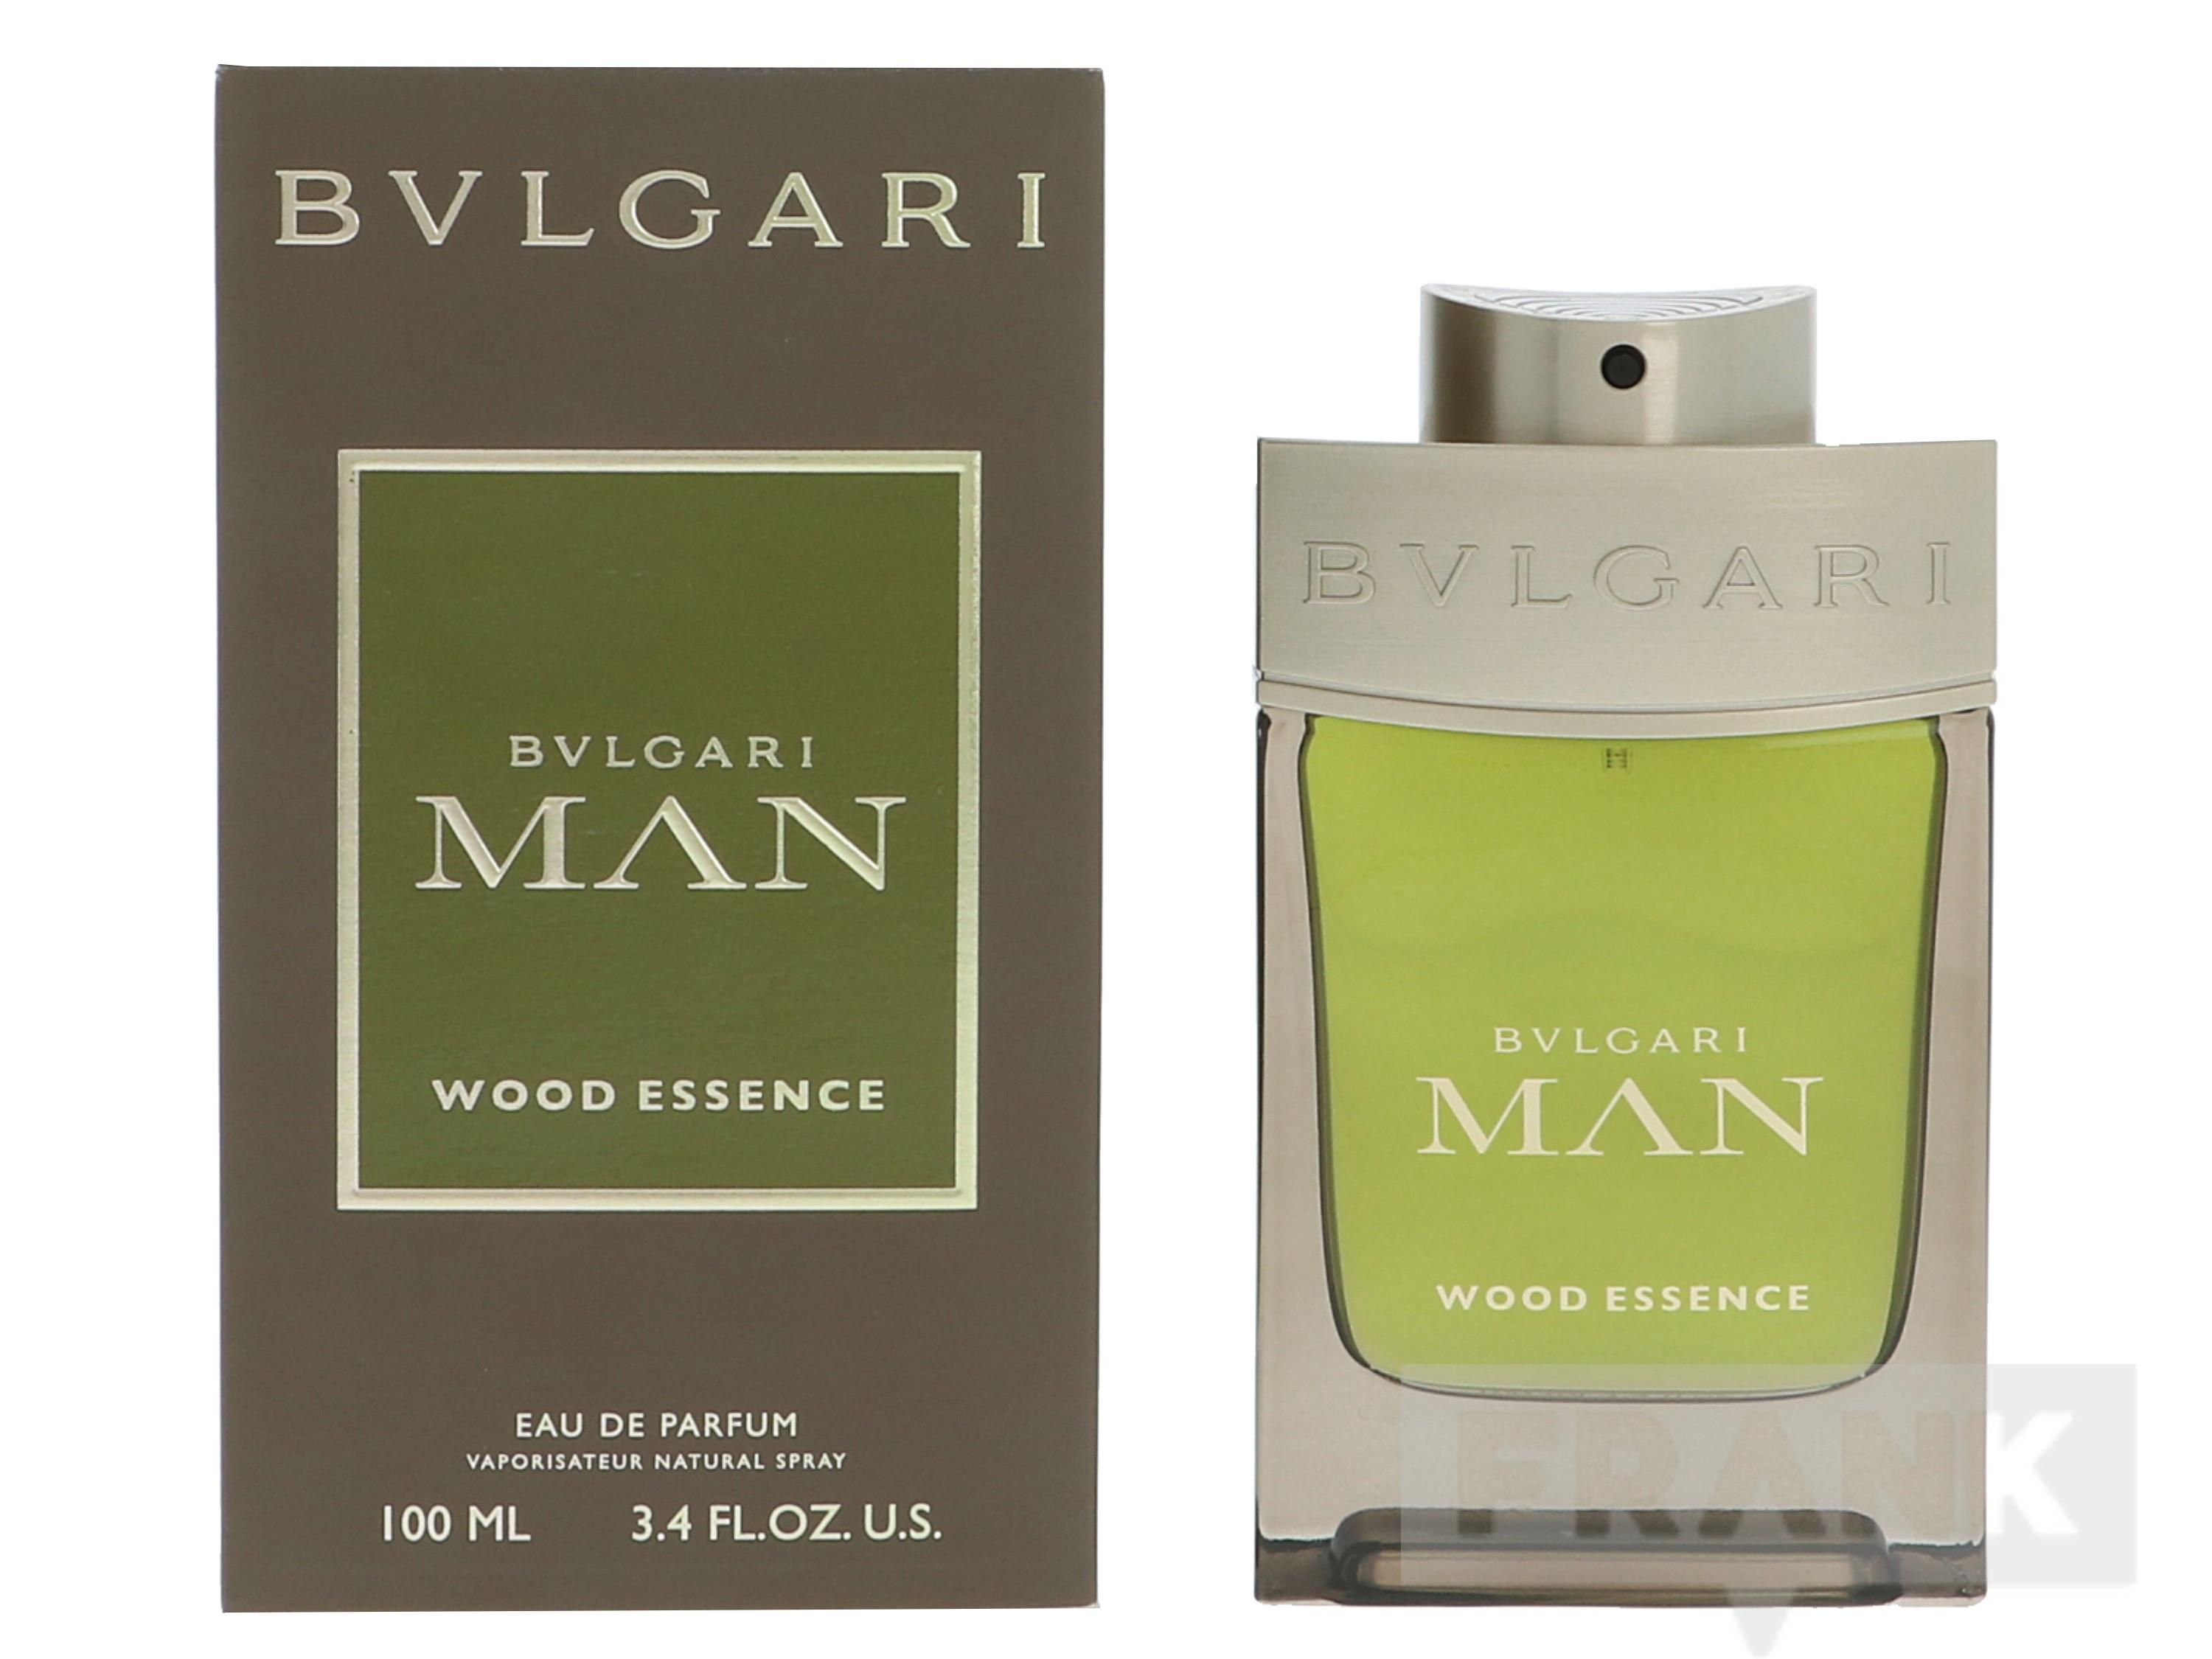 Bvlgari Man In Wood Essence Edp Spray